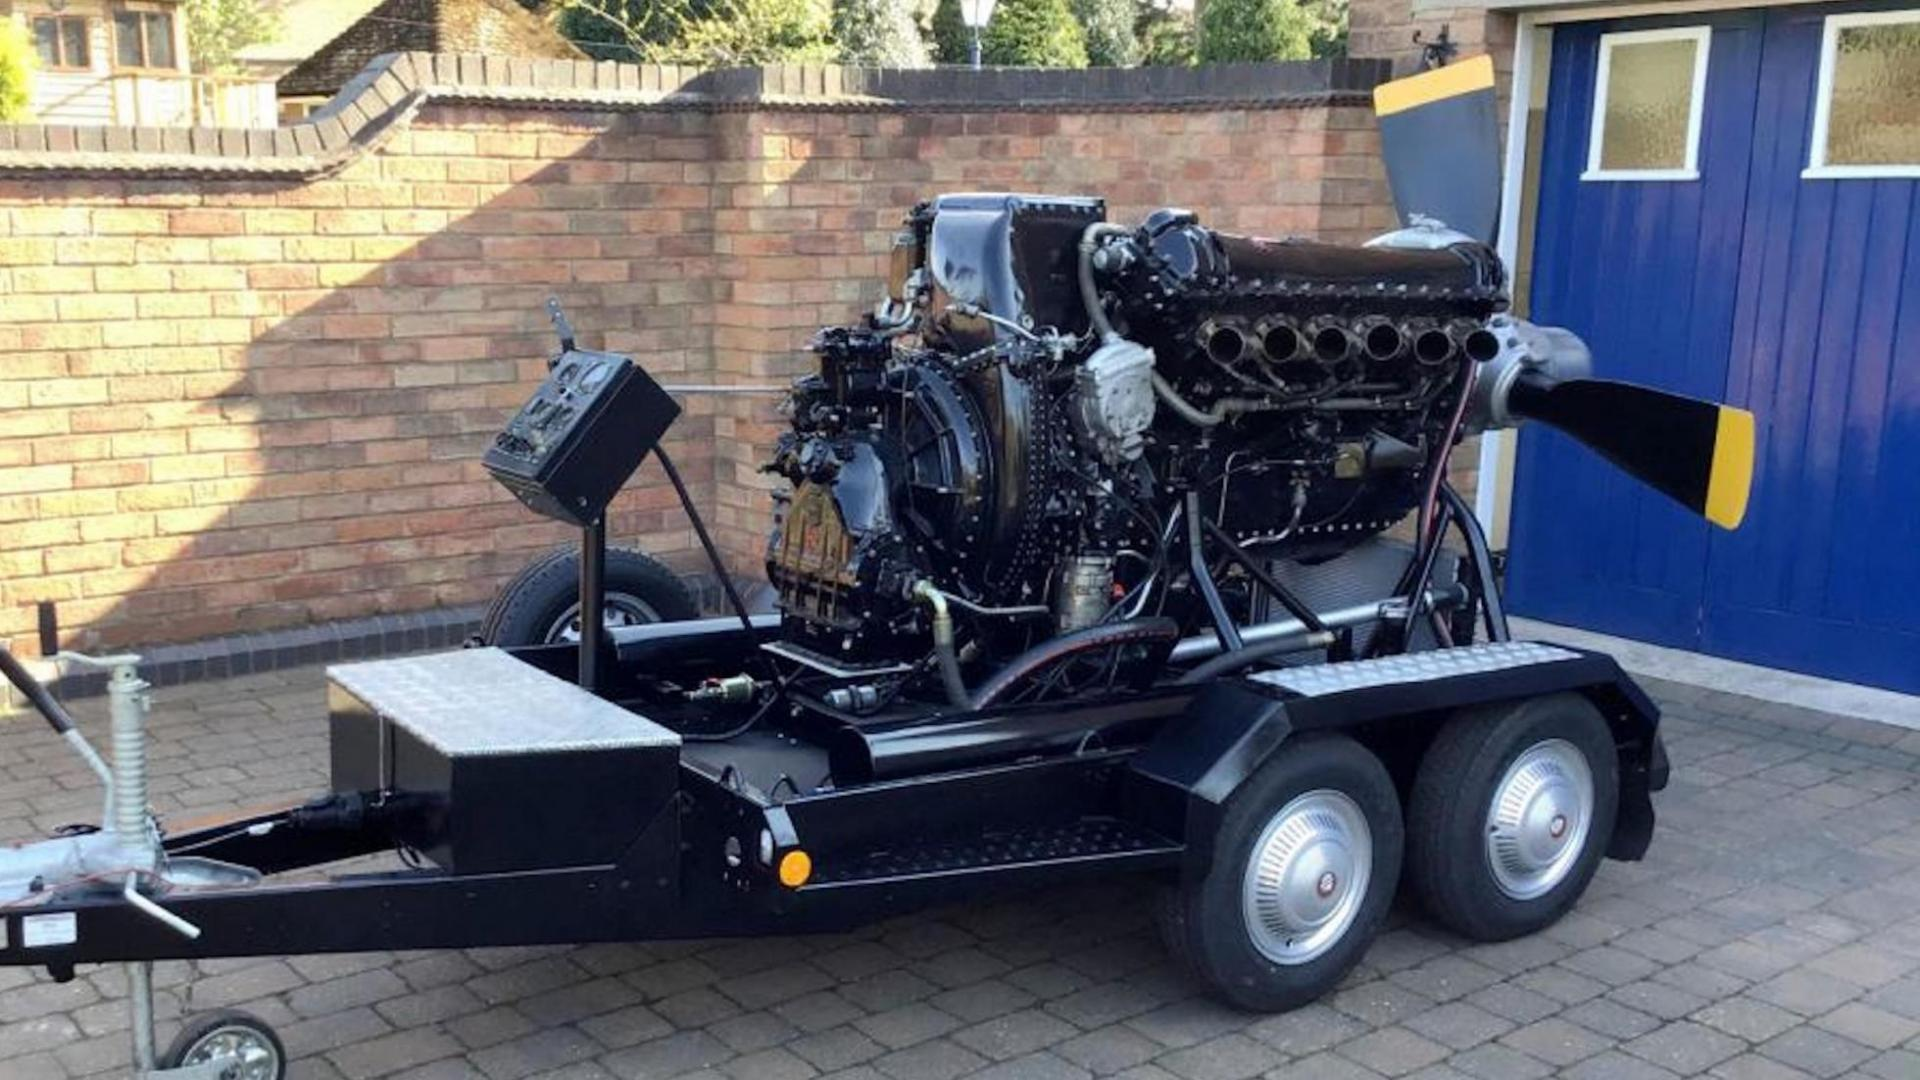 Rolls-Royce Merlin V12 Motor op trailer links